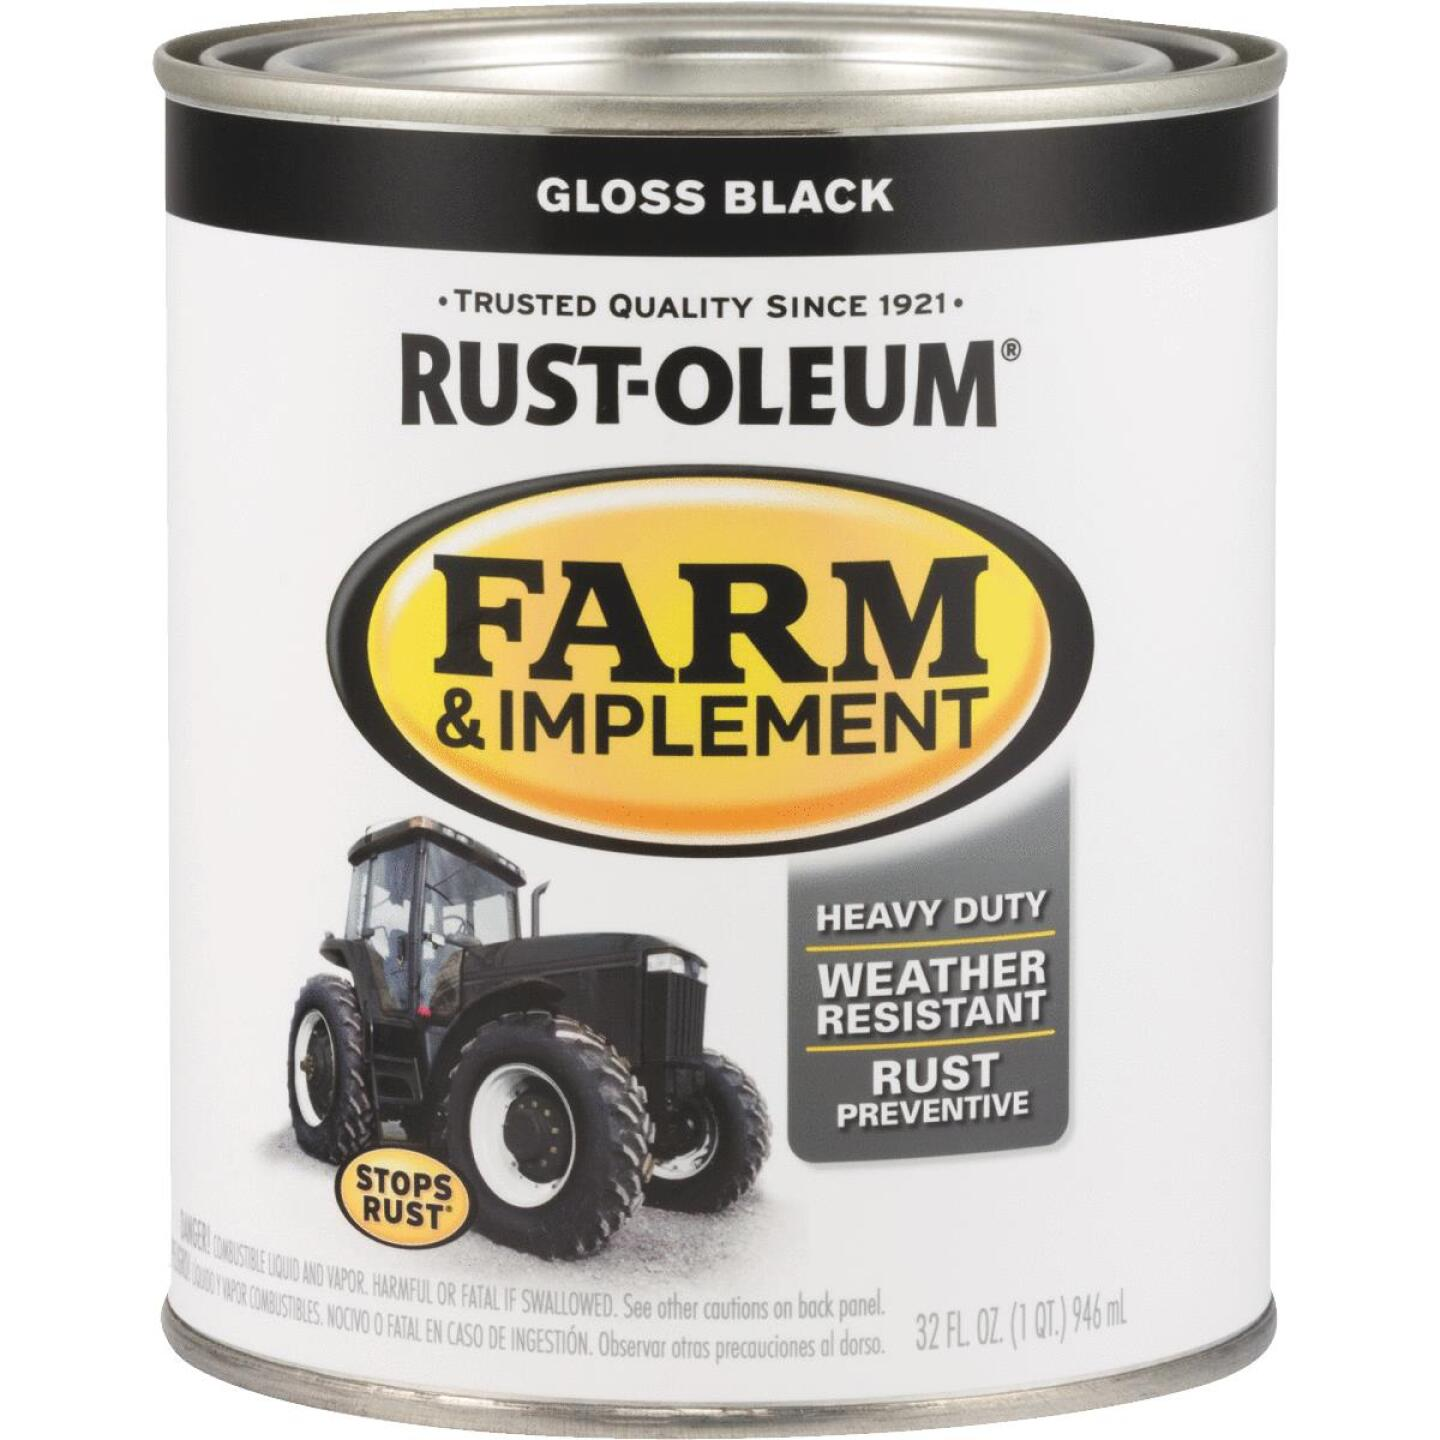 Rust-Oleum 1 Quart Black Gloss Farm & Implement Enamel Image 1